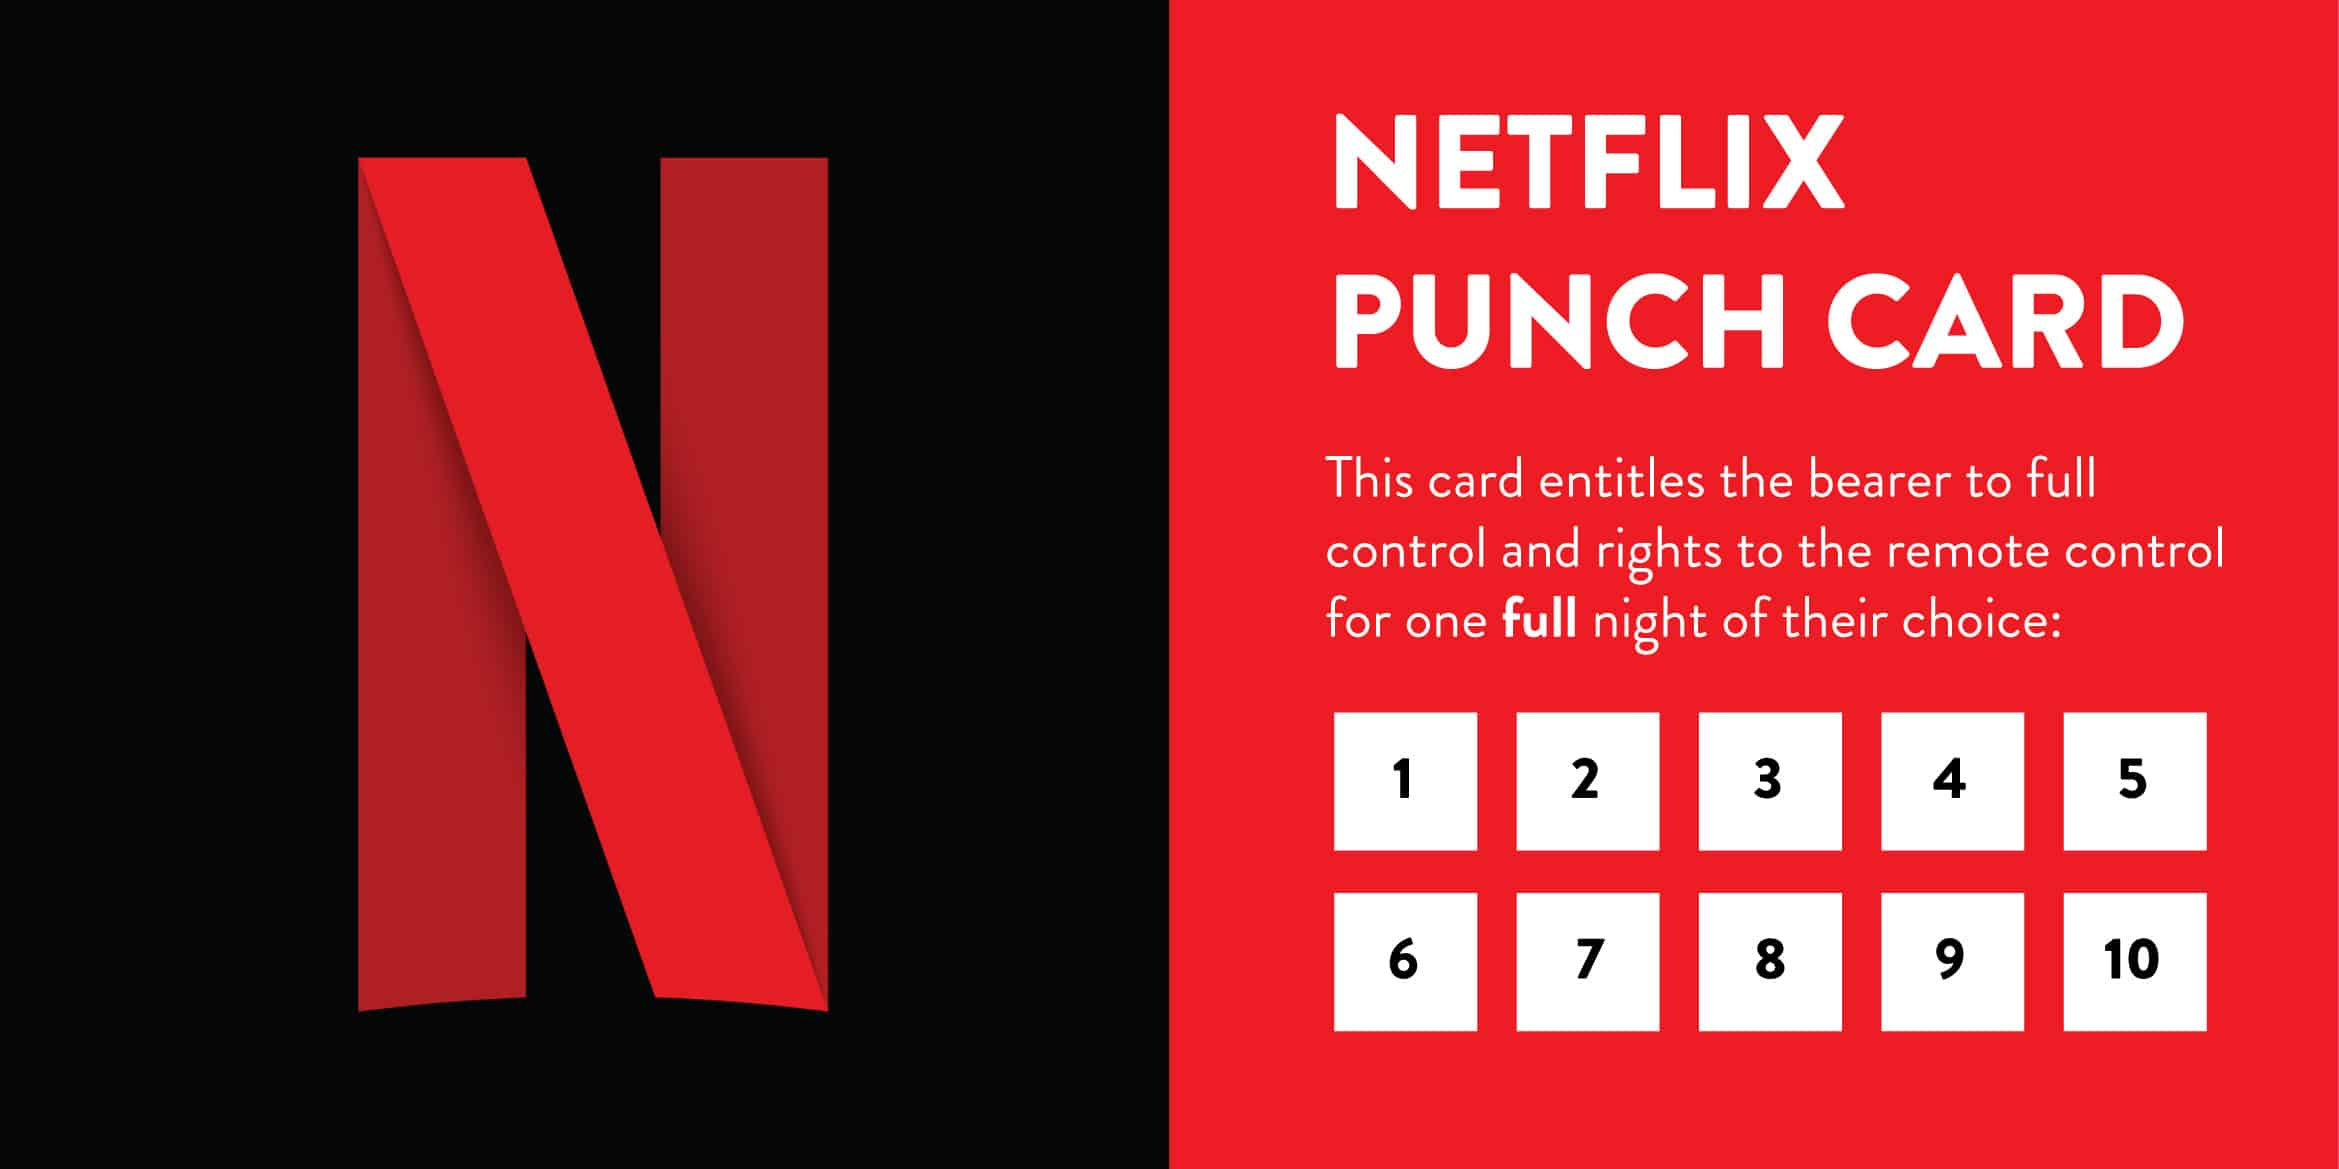 Netflix Punch Card